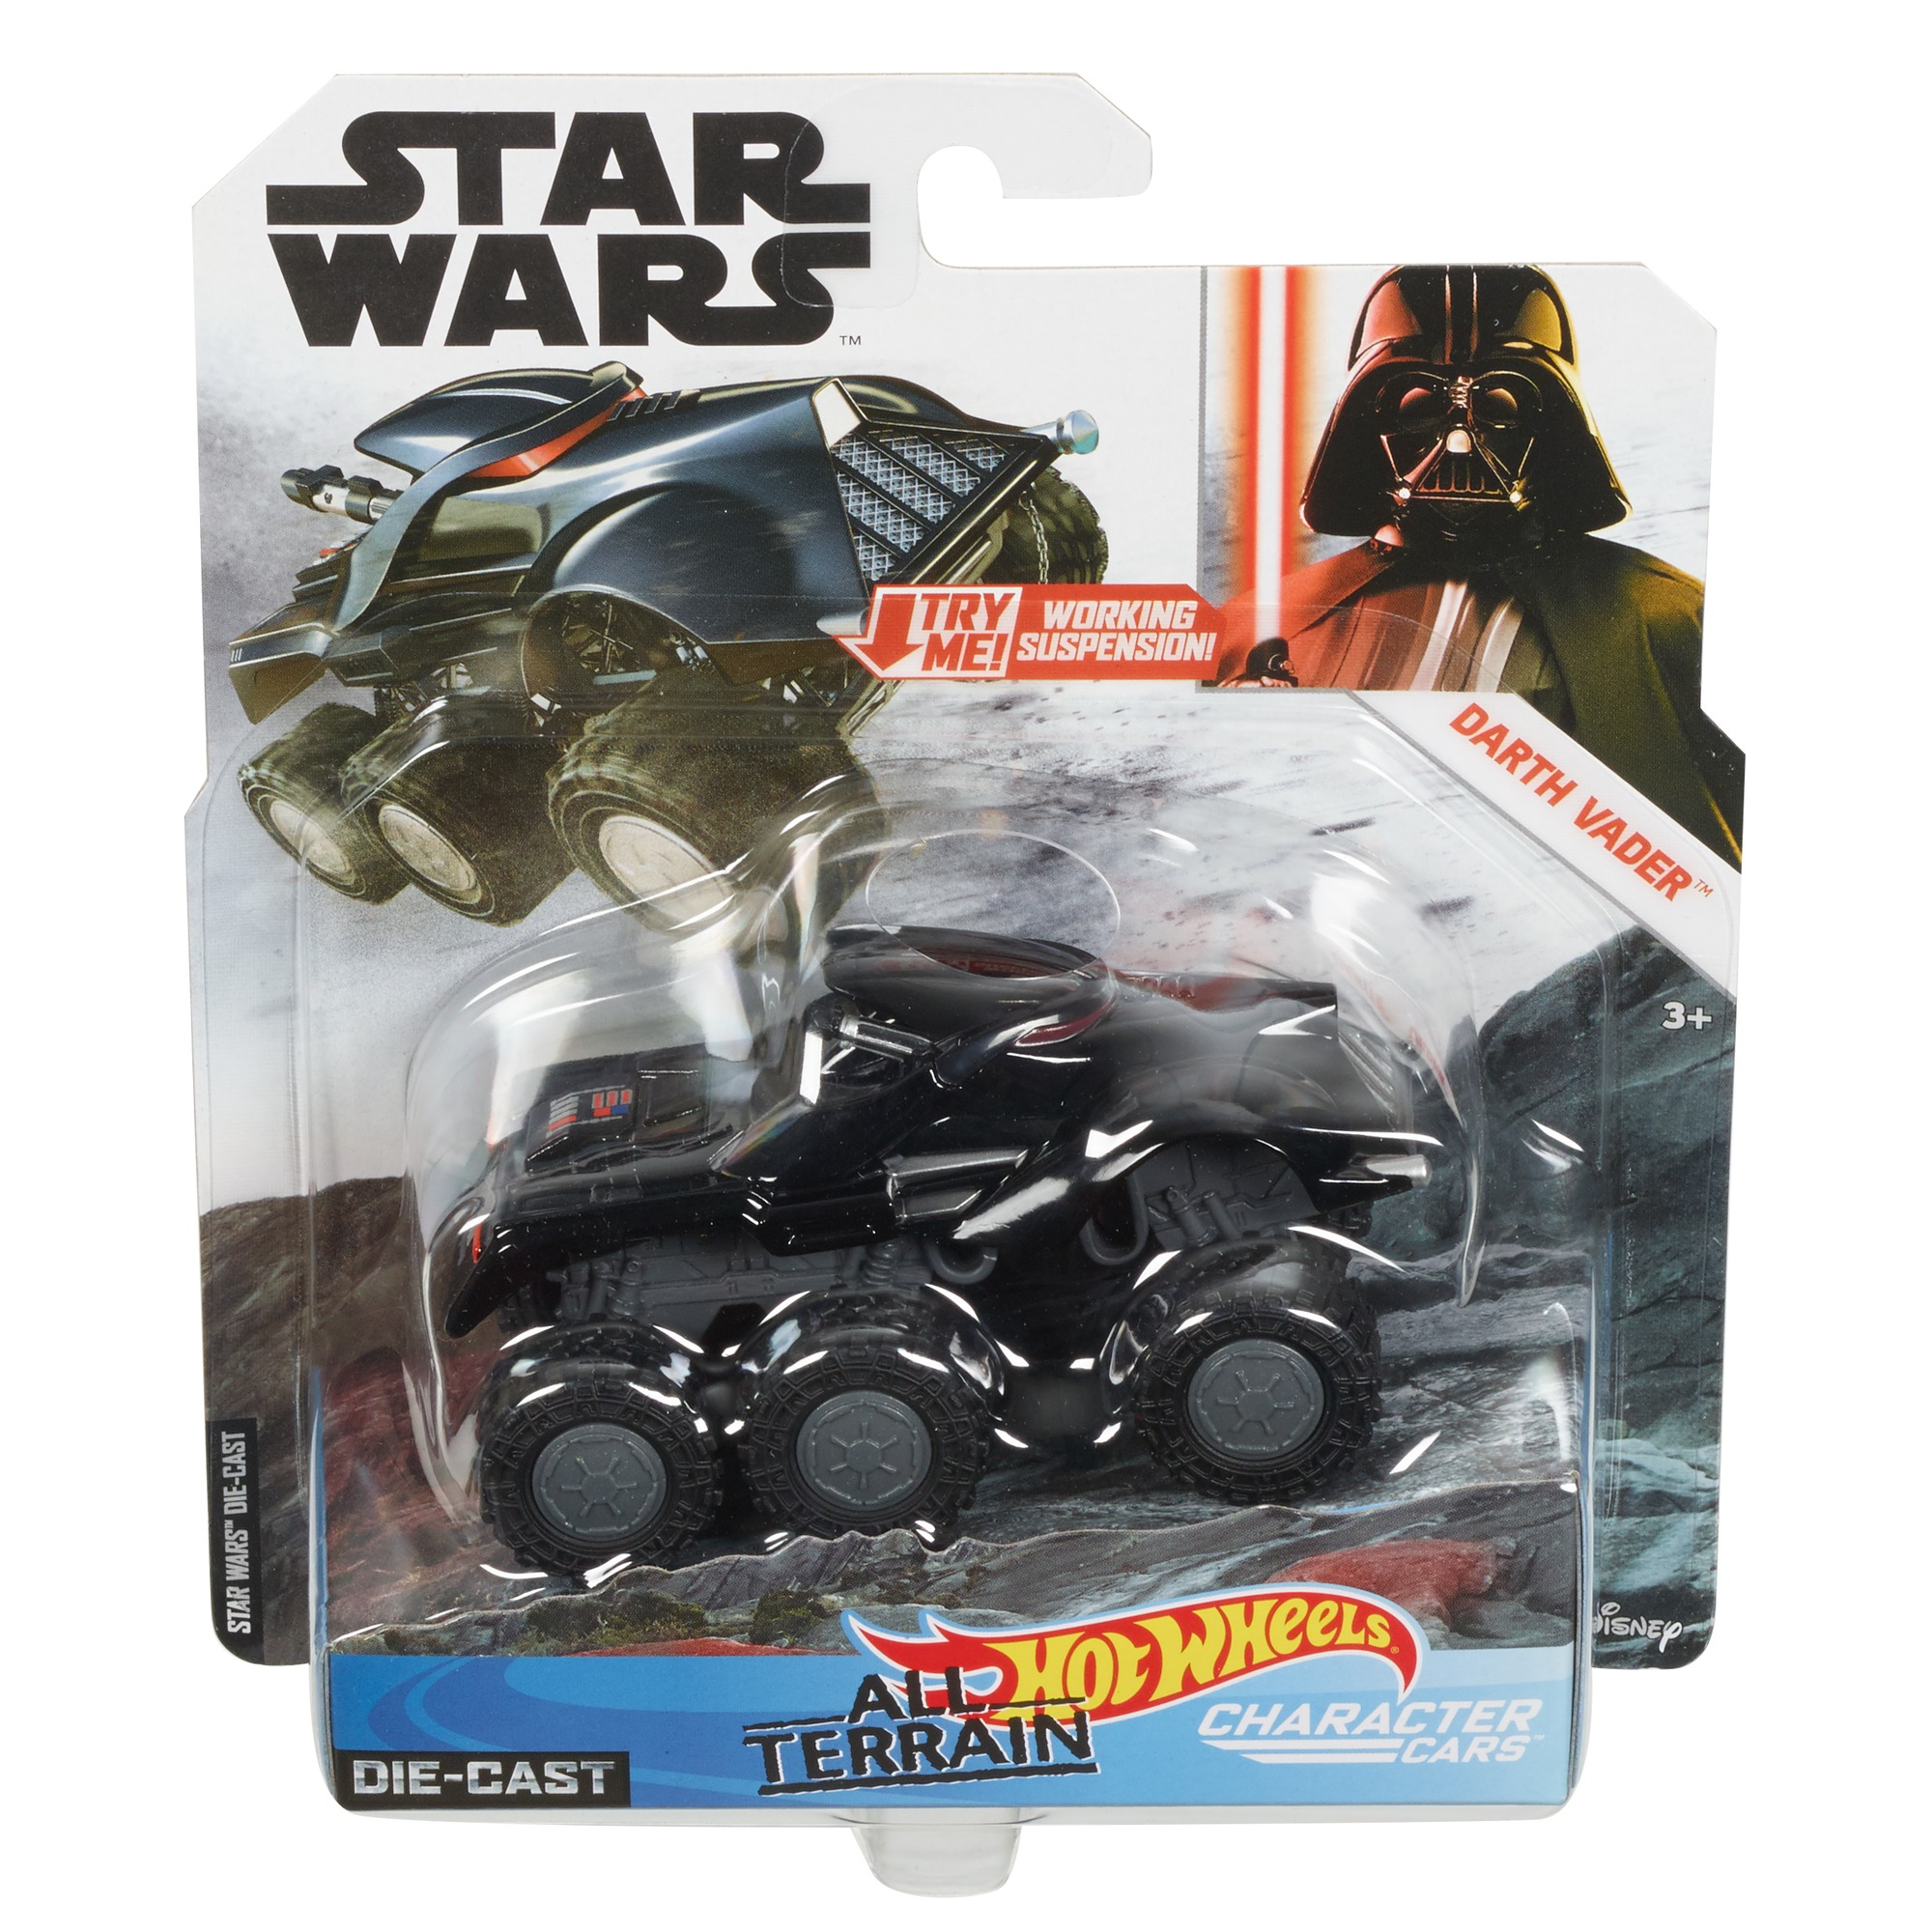 SW Darth Vader All Terrain Character Car Toy